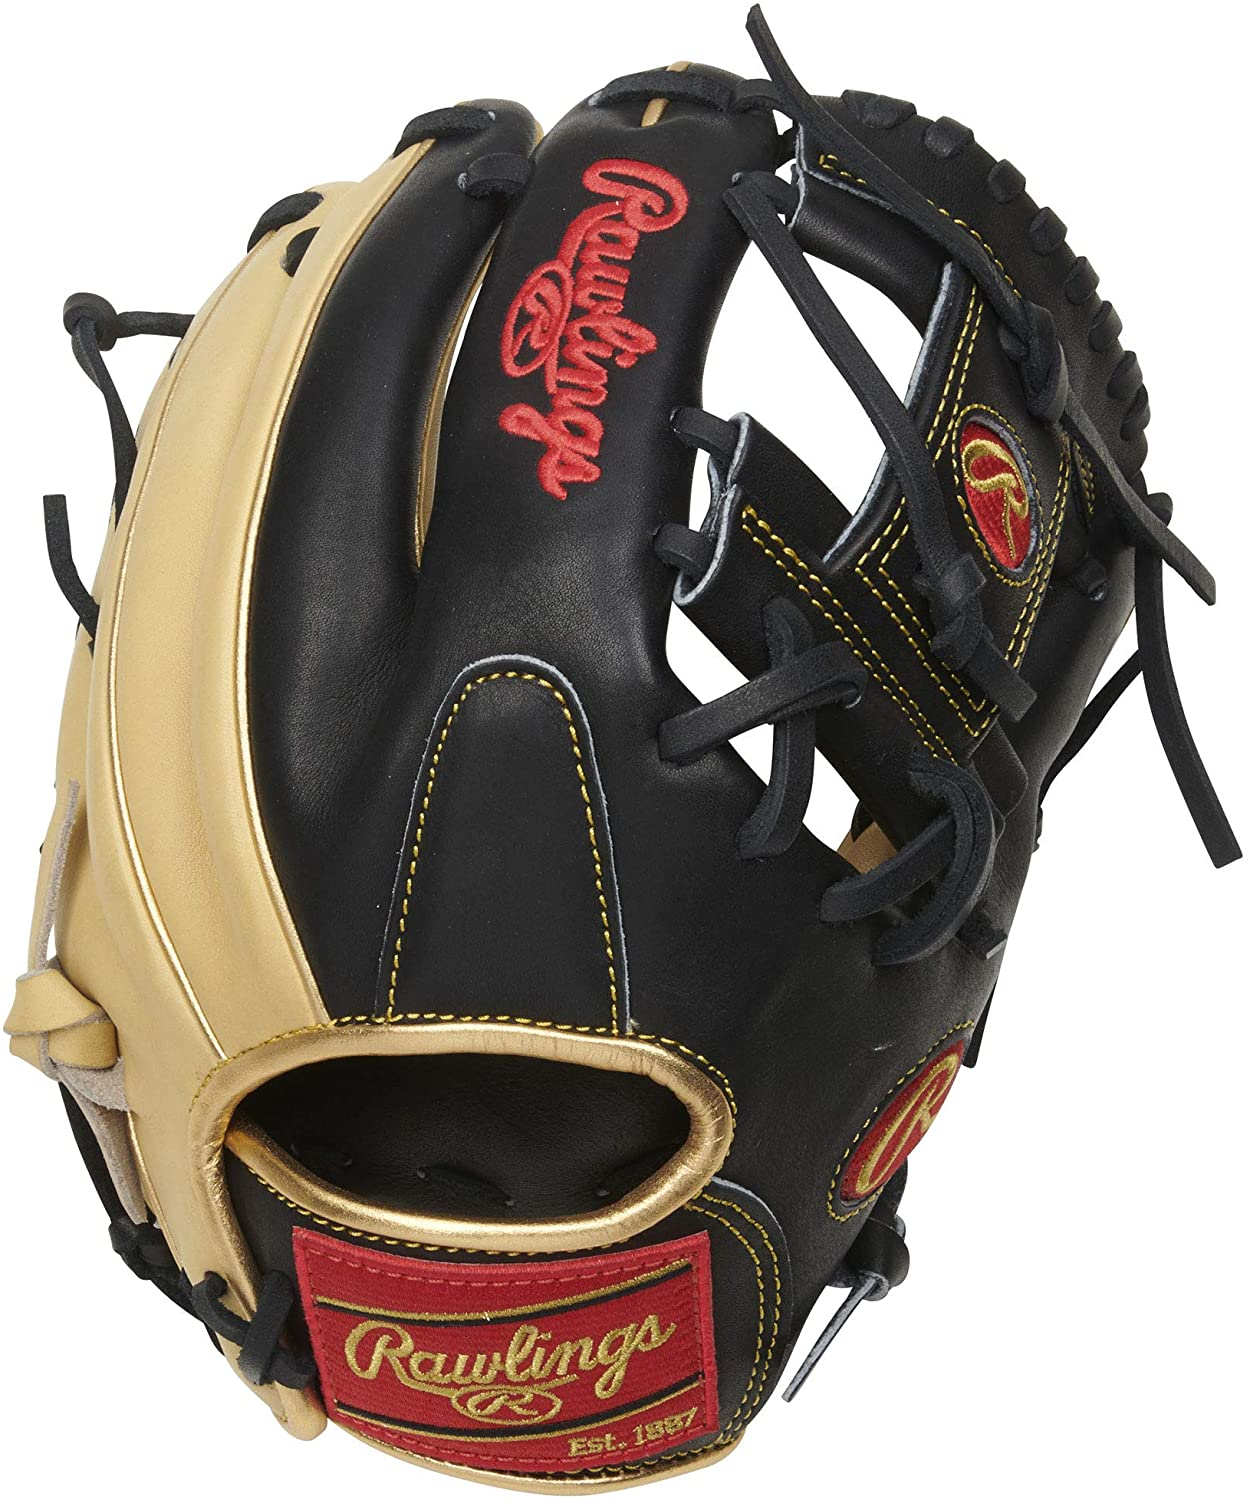 Rawlings' all new Heart of the Hide R2G gloves feature little to no break in required for a game ready feel and narrow fit design ideal for smaller hands. Constructed from Rawlings' world-renowned Heart of the Hide steer leather, Heart of the Hide gloves feature the game-day patterns of the top Rawlings Advisory Staff players. These high quality gloves have defined the careers of those deemed as the finest in the field and are are available to elite athletes looking to join the next class of defensive greats. - 11.5 Inch 200U Pattern - Pro I Web - Narrow Fit Pattern Ideal For Smaller Hands - Conventional Open Back - Redesigned Heel Pad For Easier Close - Pro Grade Leather Laces - Constructed From the Top 5% of All Hides Available - Deer tanned Cowhide Plus Palm Lining - Soft Full-Grain Fingerback Linings - Heart of the Hide Steer Leather.